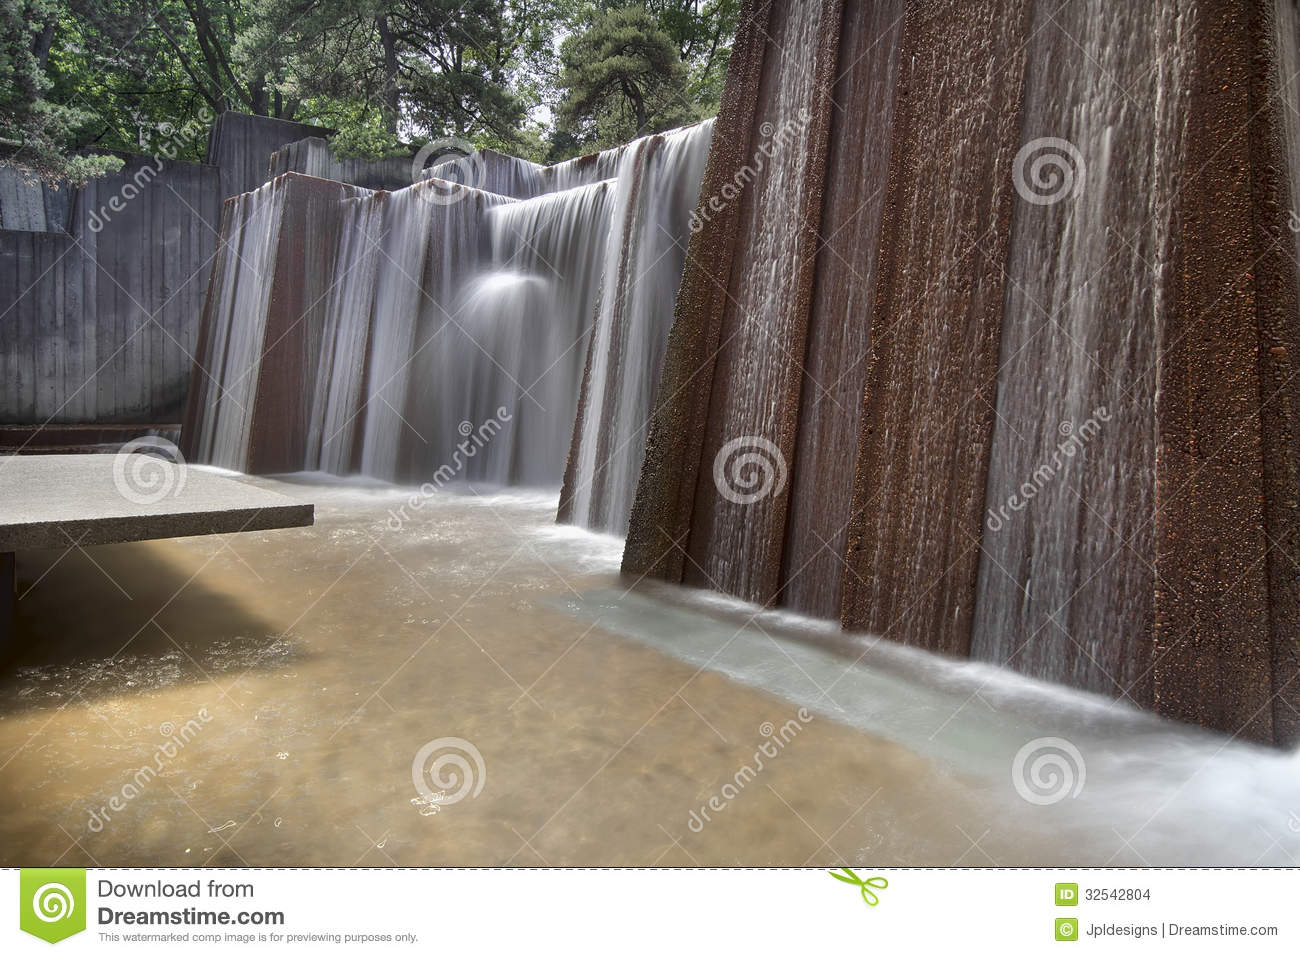 Public Parks Water Fountain Stock Images - Image: 32542804